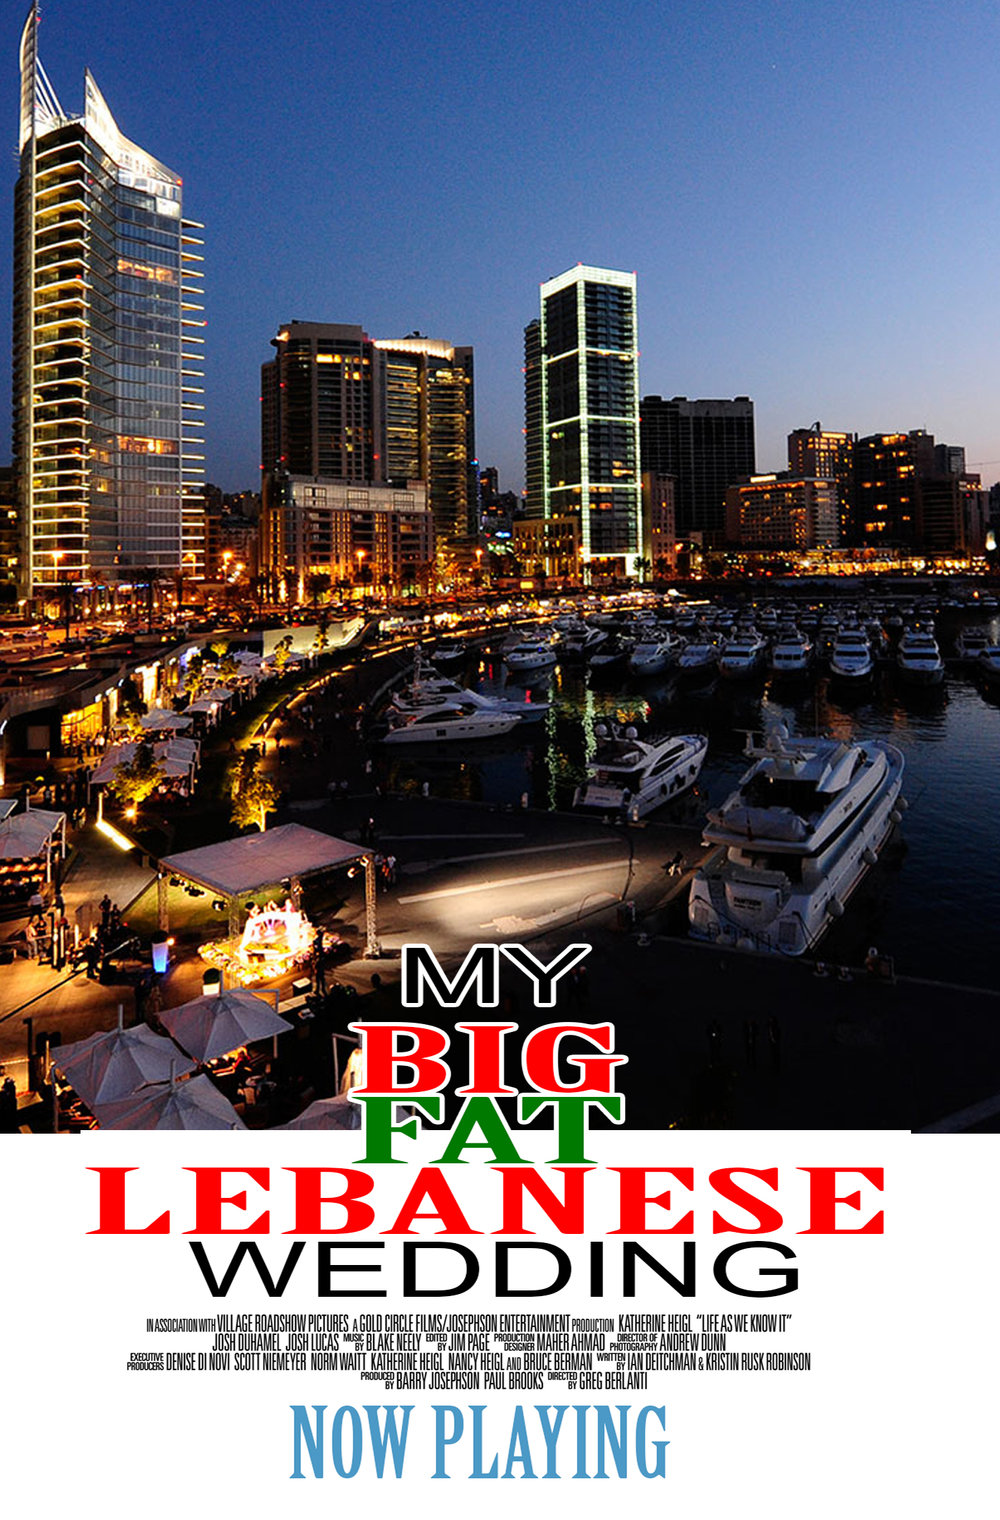 My Big Fat Lebanese Wedding